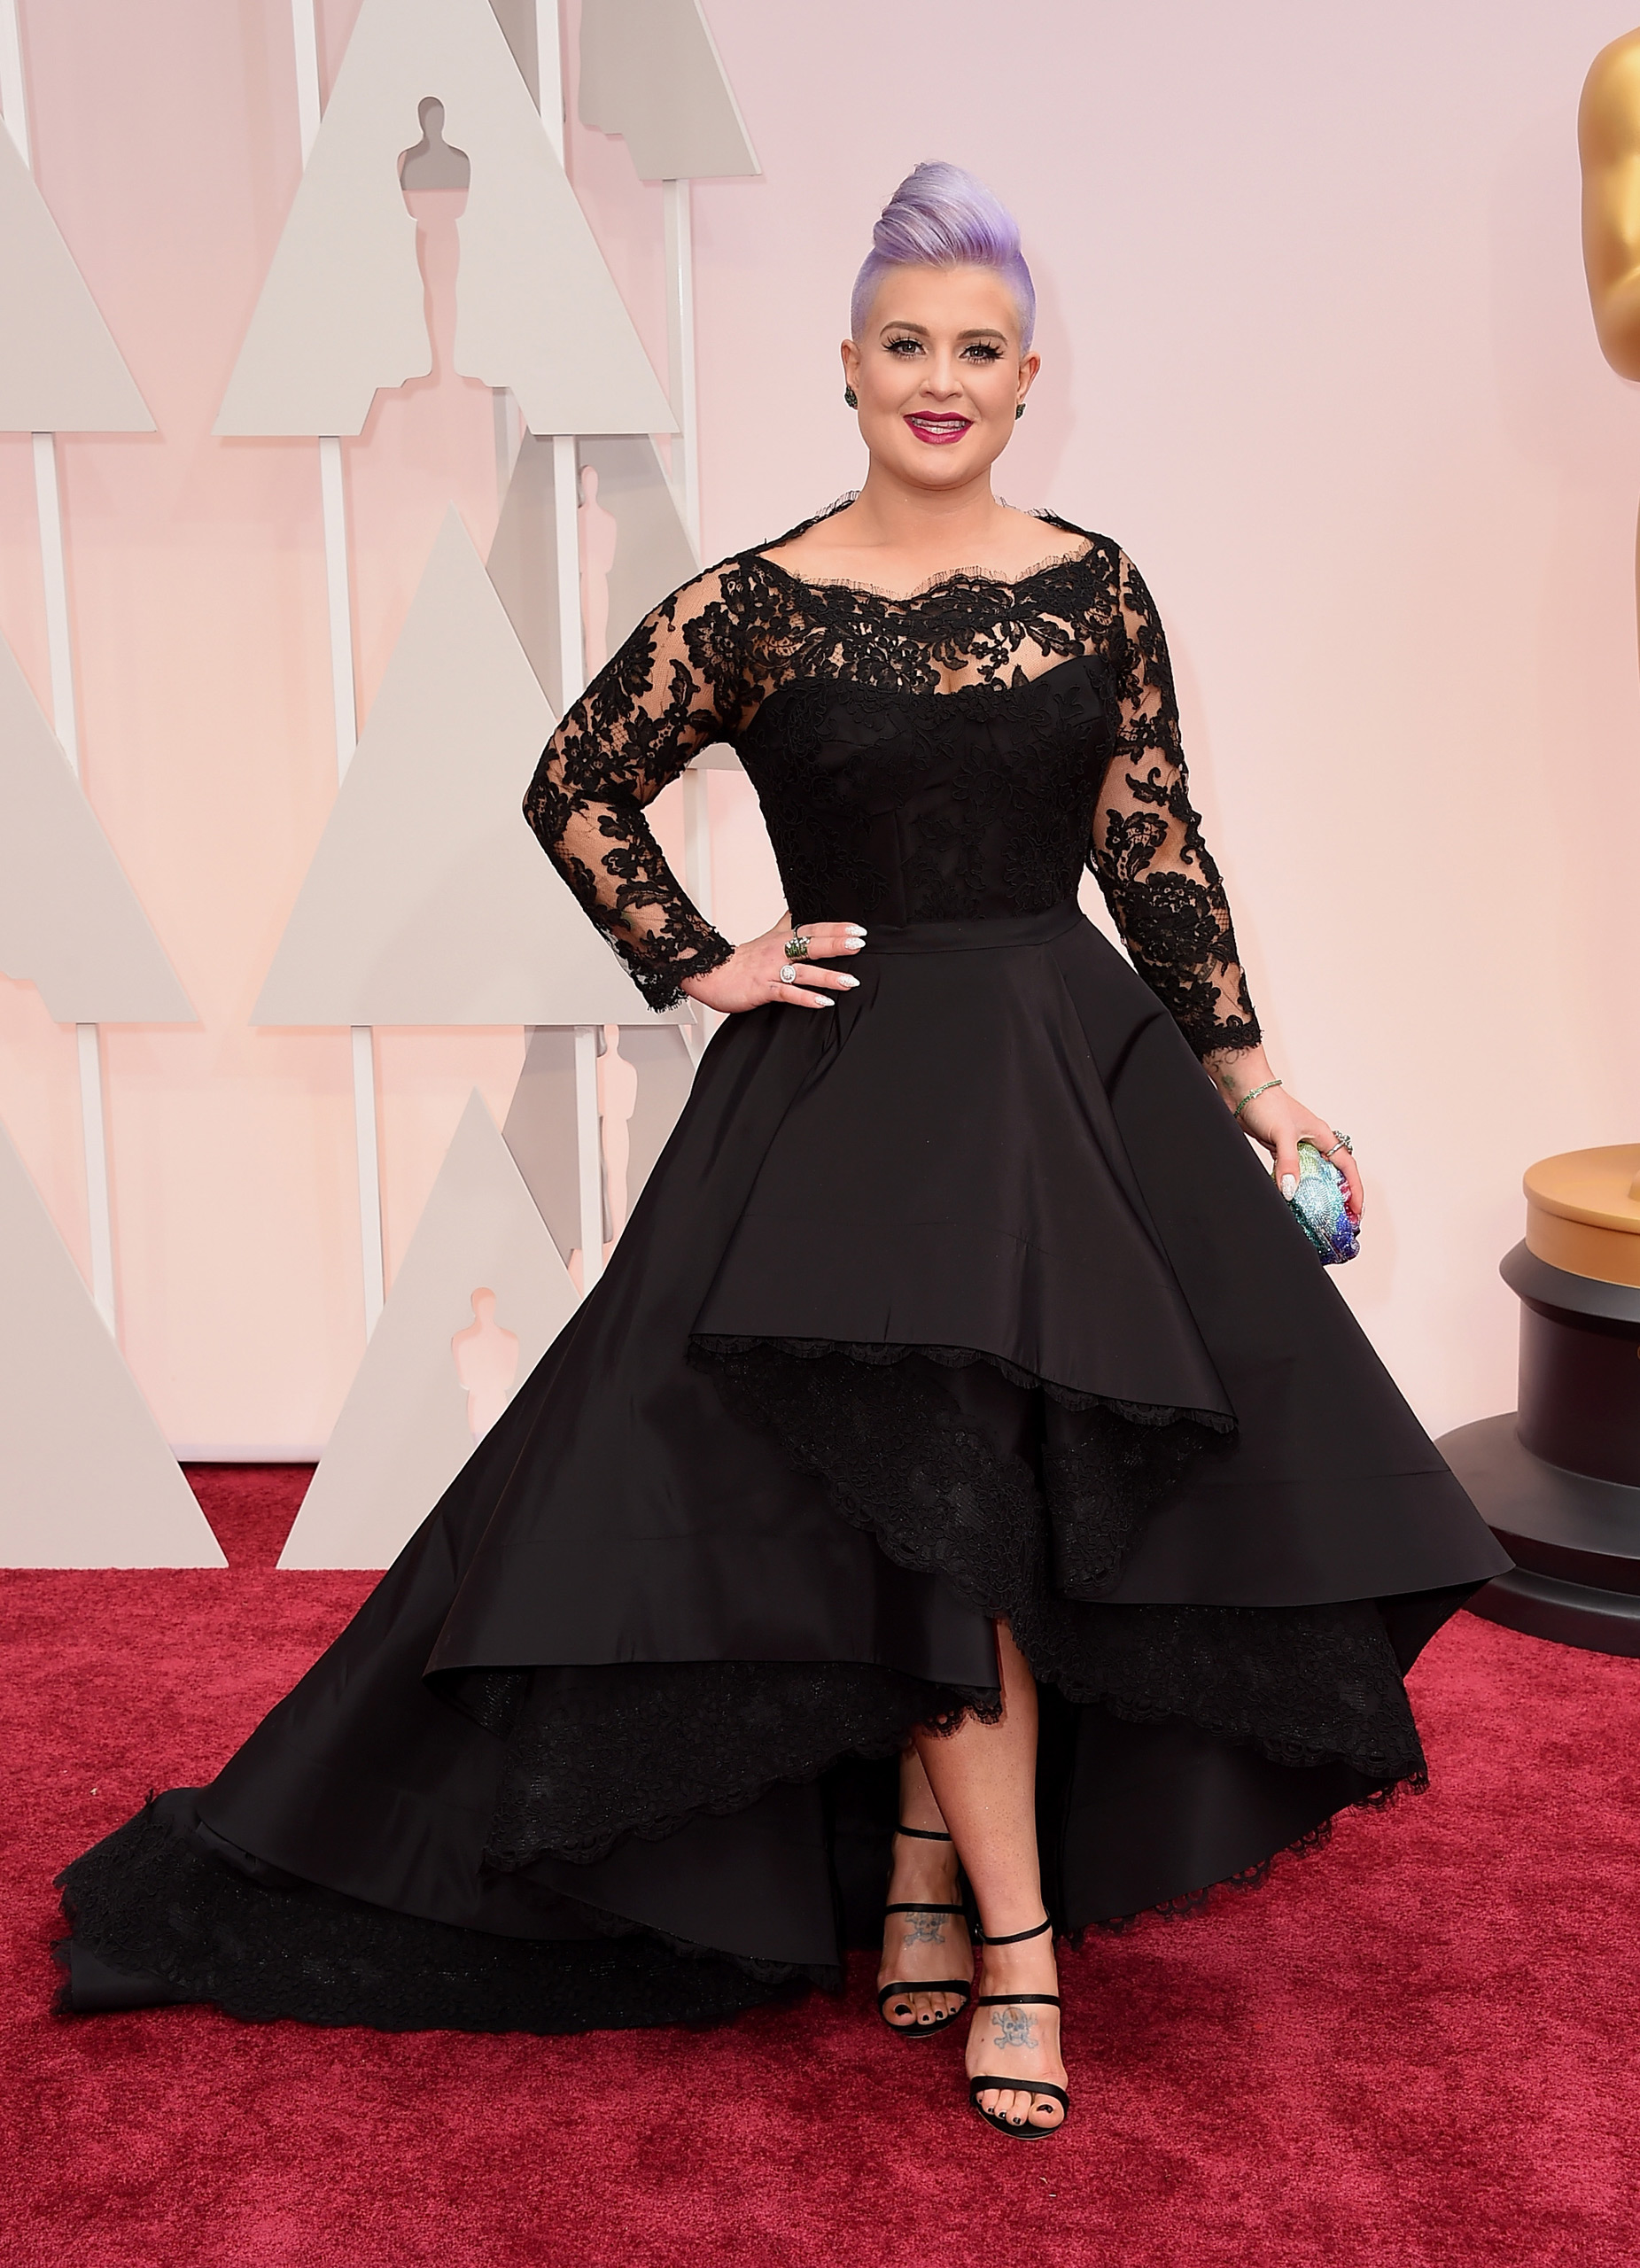 Kelly Osbourne attends the 87th Annual Academy Awards on Feb. 22, 2015 in Hollywood, Calif.